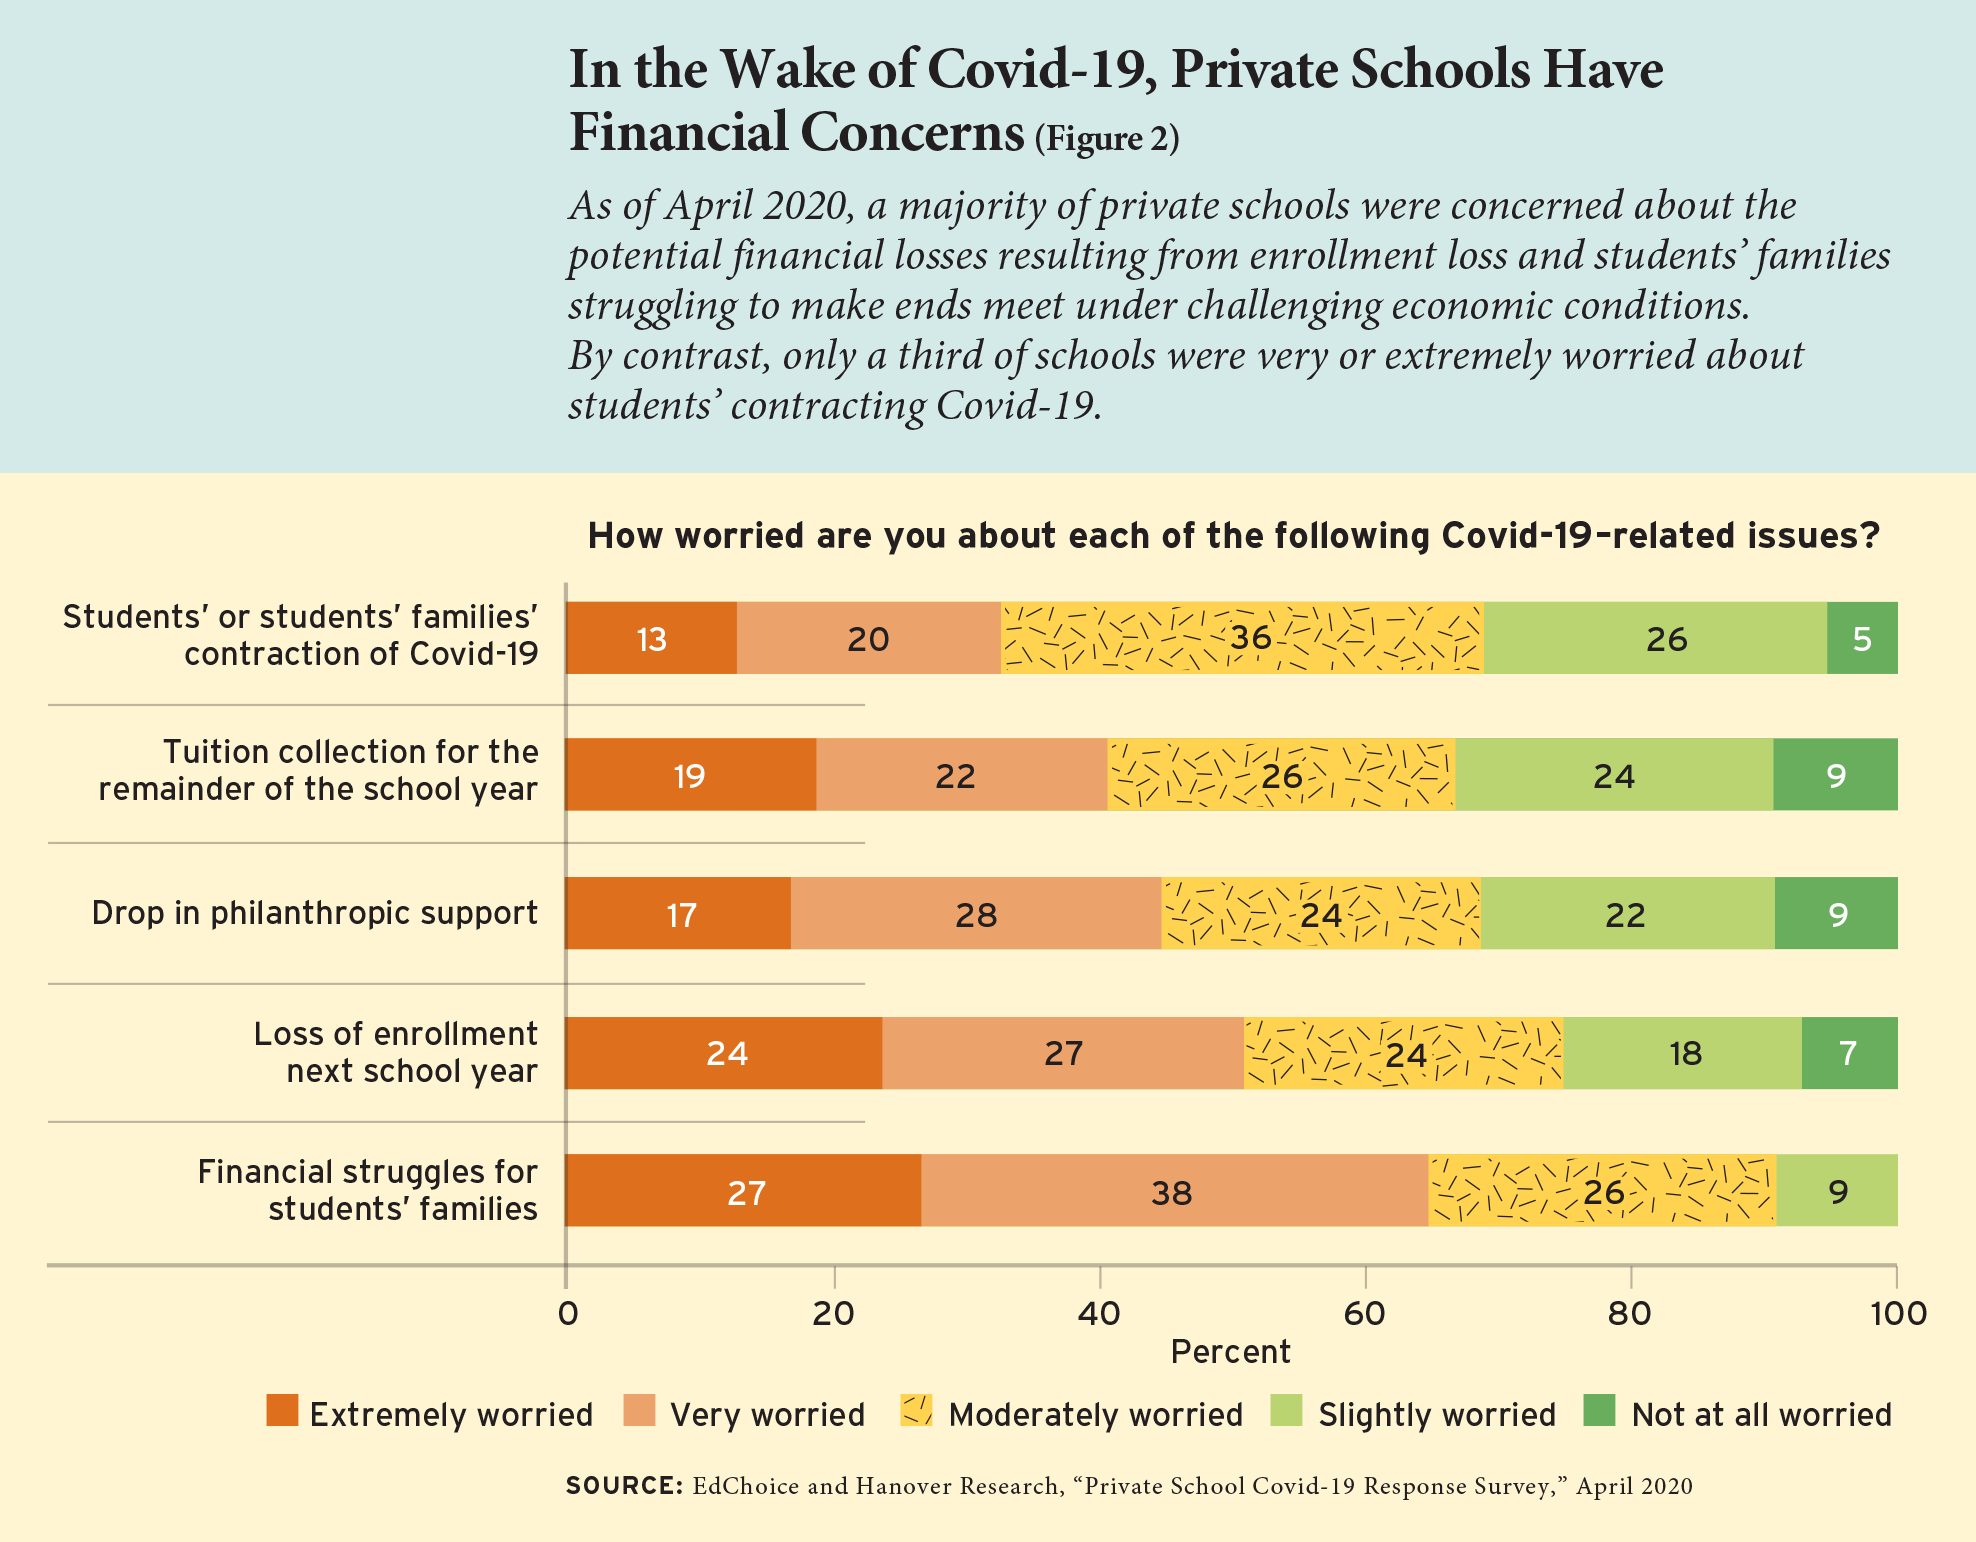 Figure 2: In the Wake of Covid-19, Private Schools Have Financial Concerns